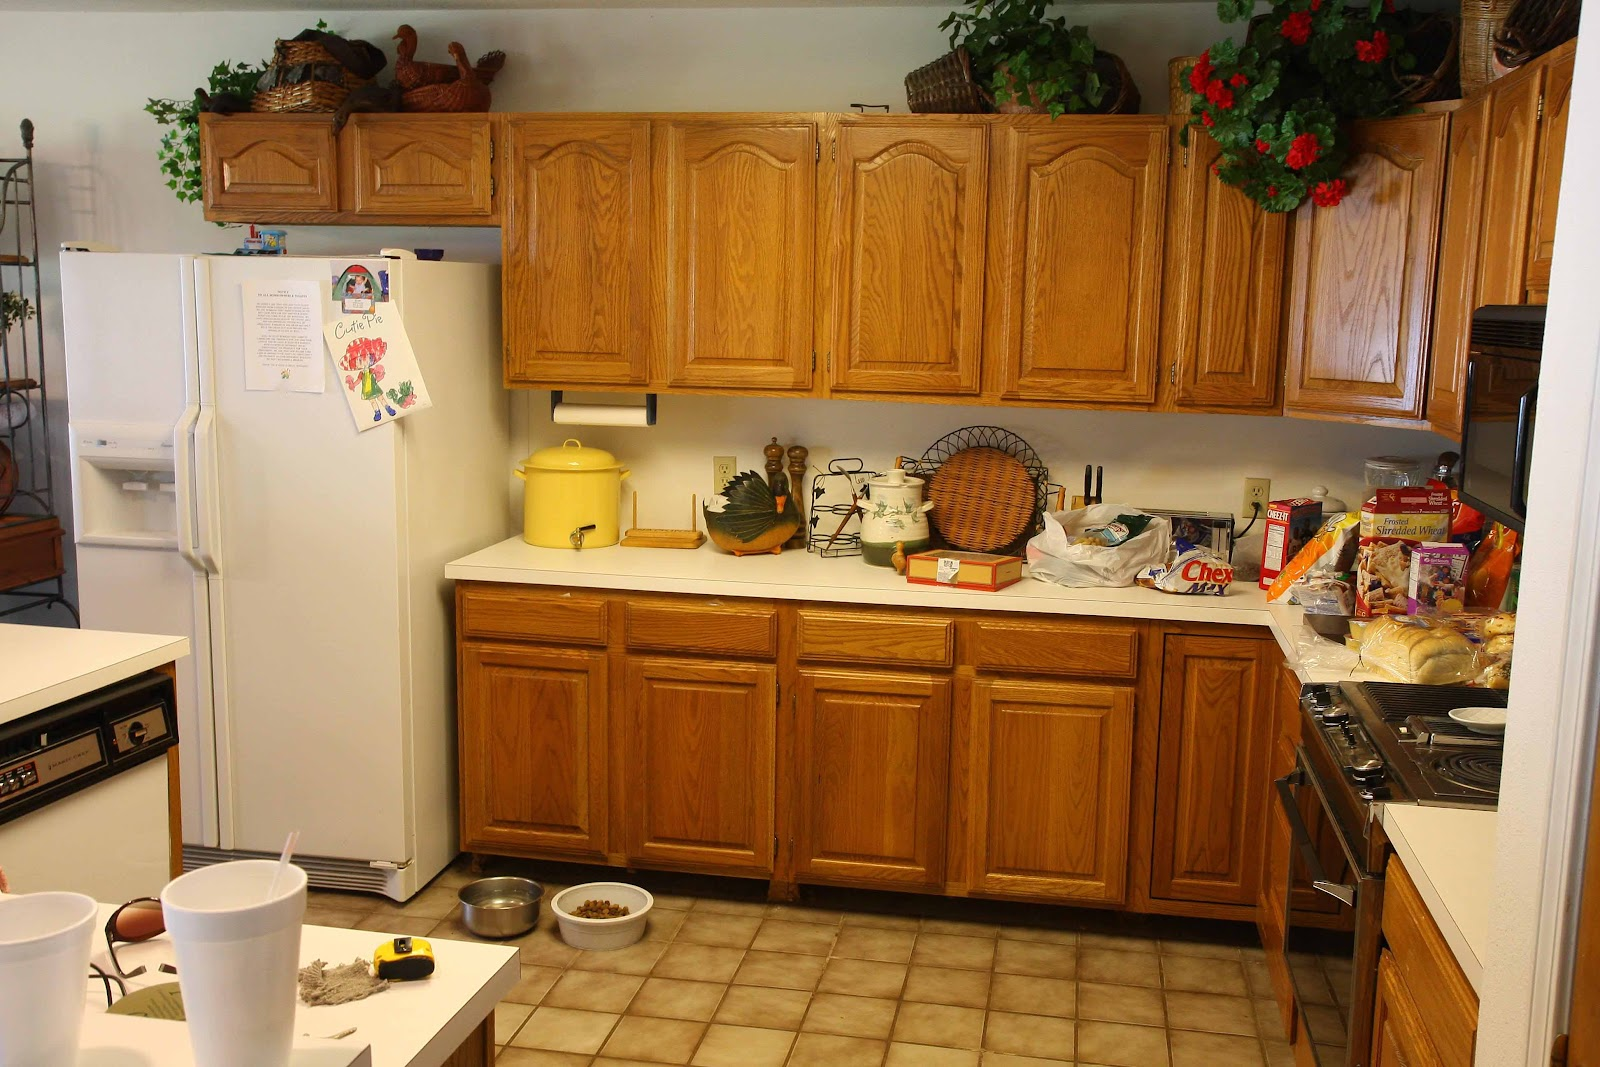 Rawdoors.net Blog: What is Kitchen Cabinet Refacing or